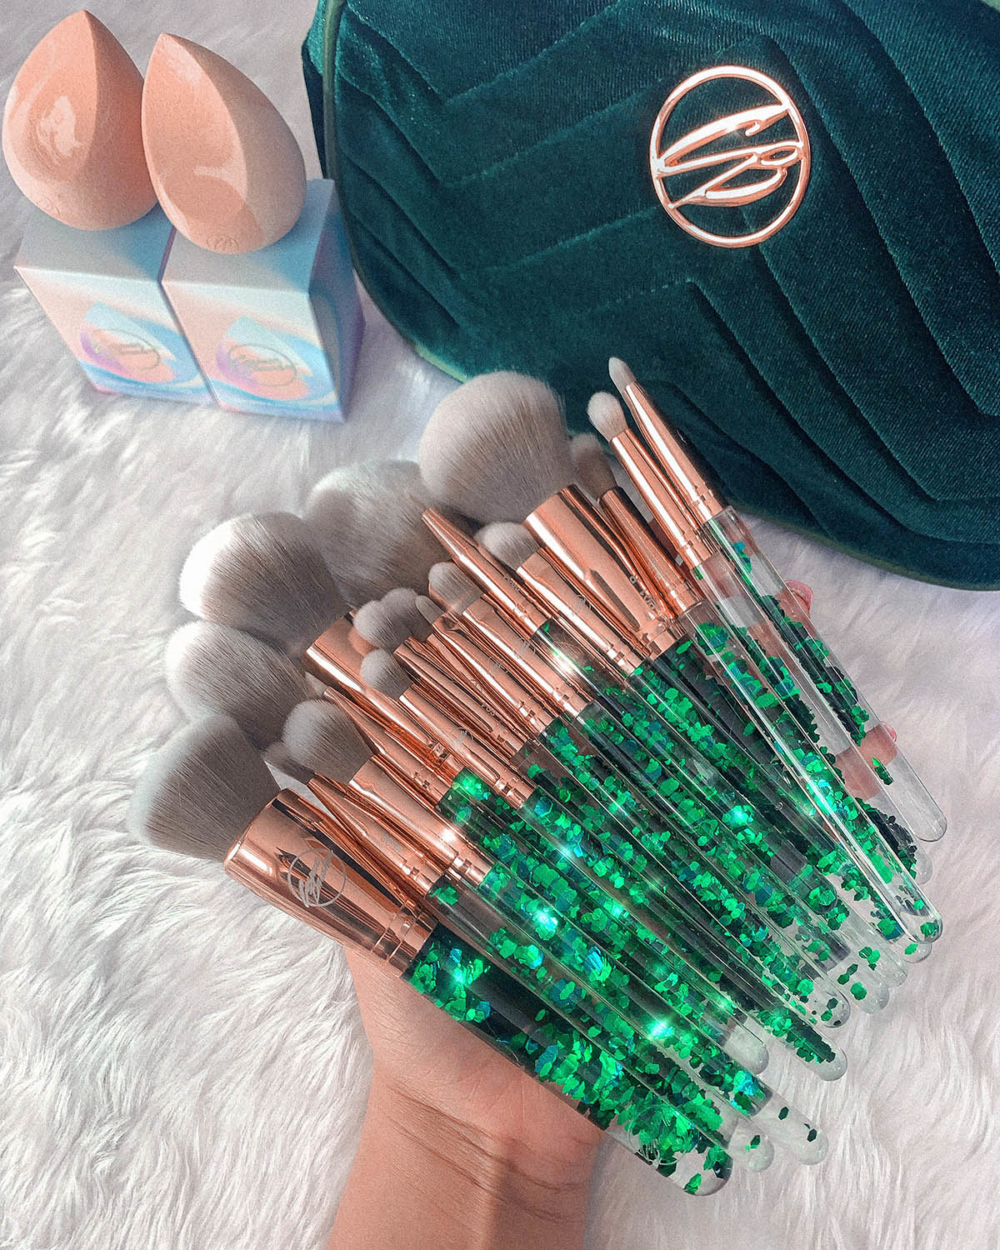 Emerald Makeup brushes